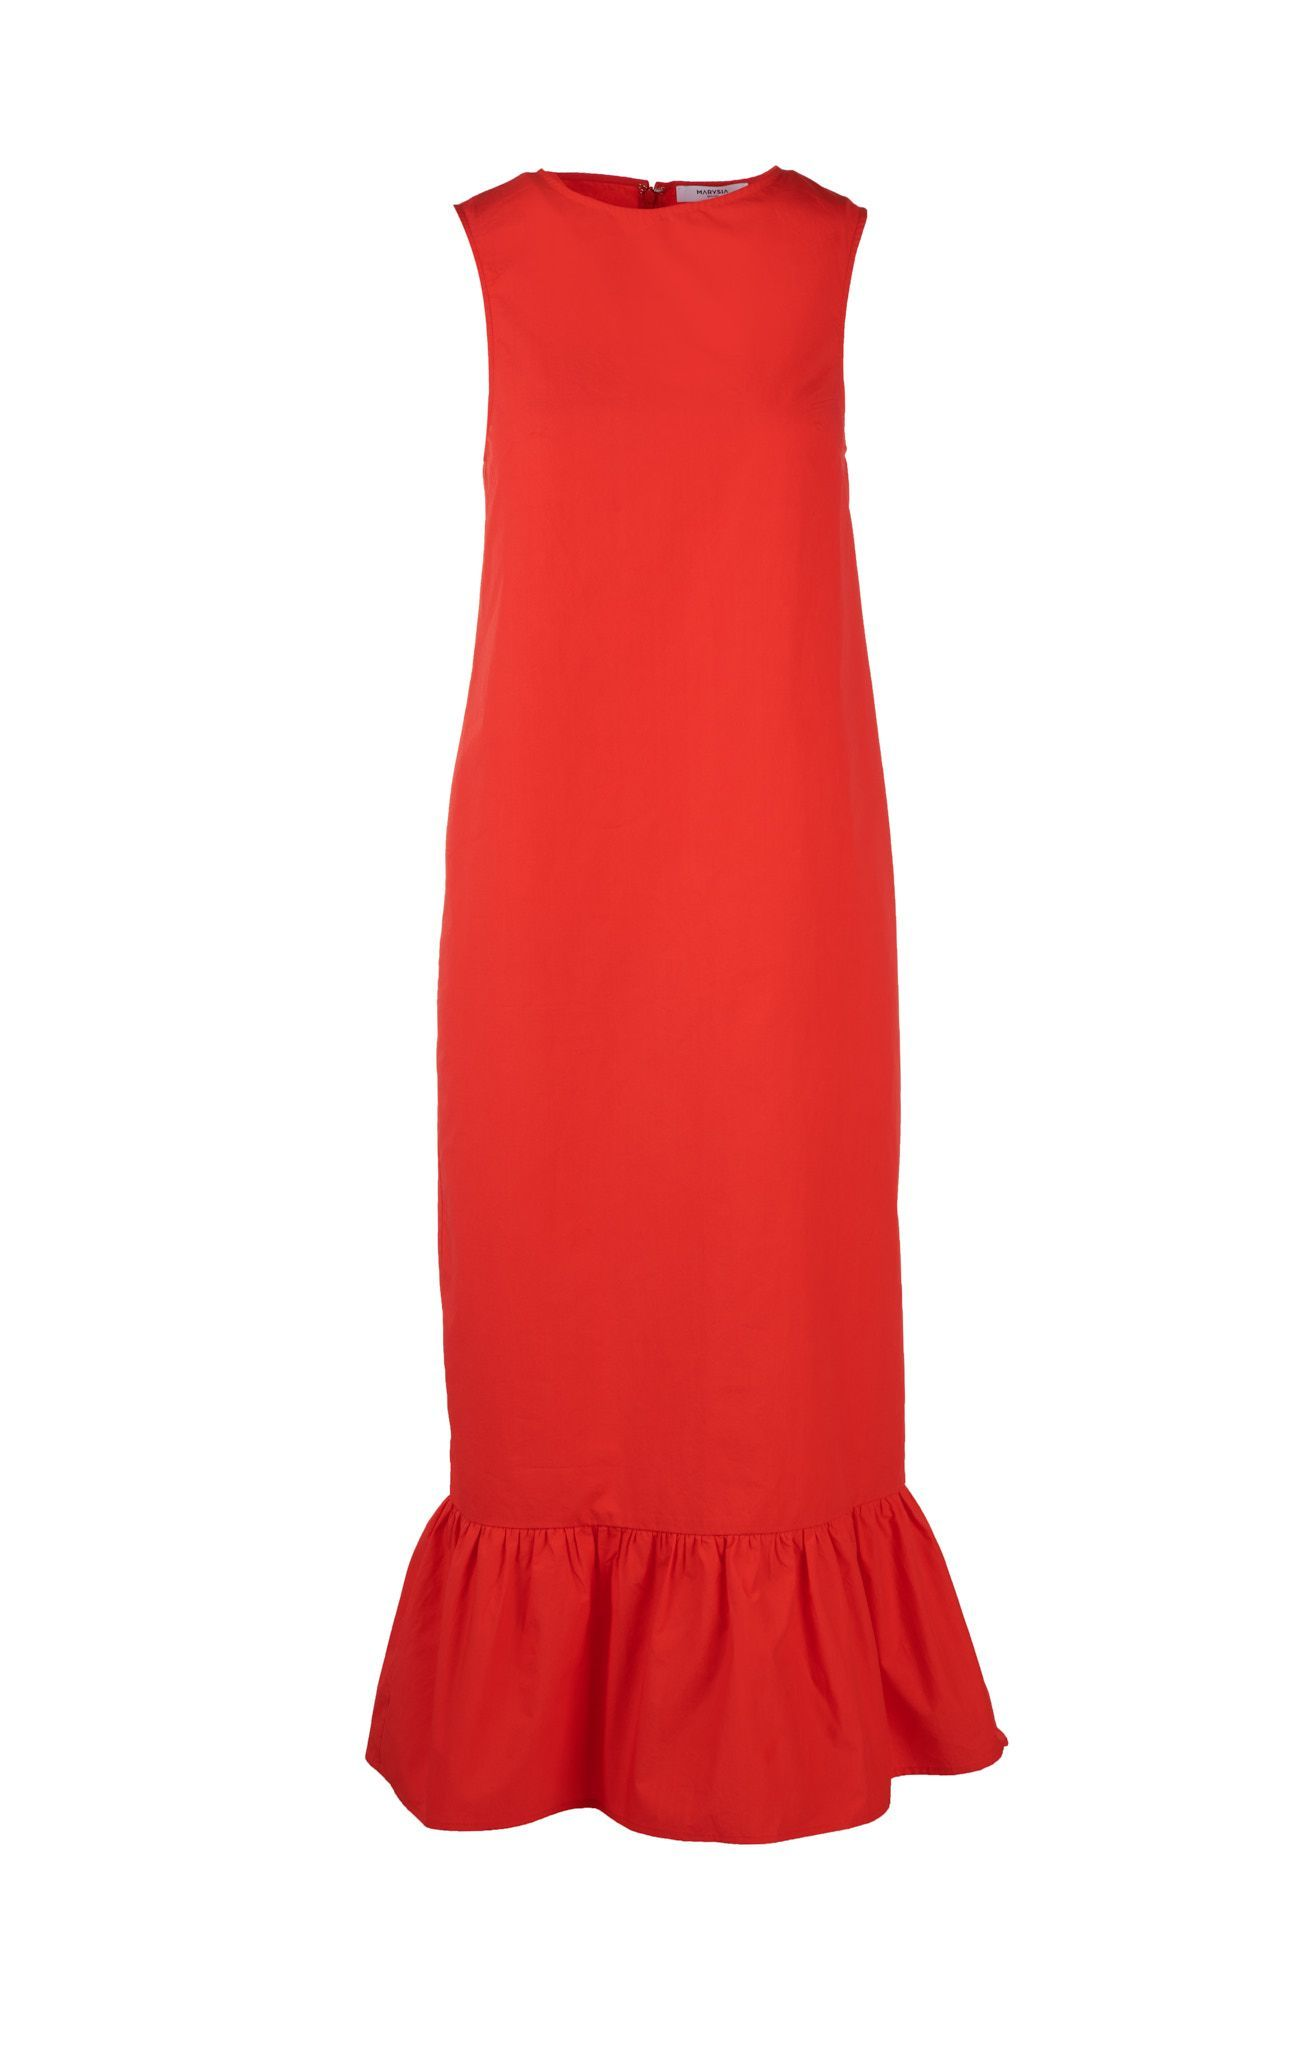 Ostuni Dress in Poppy